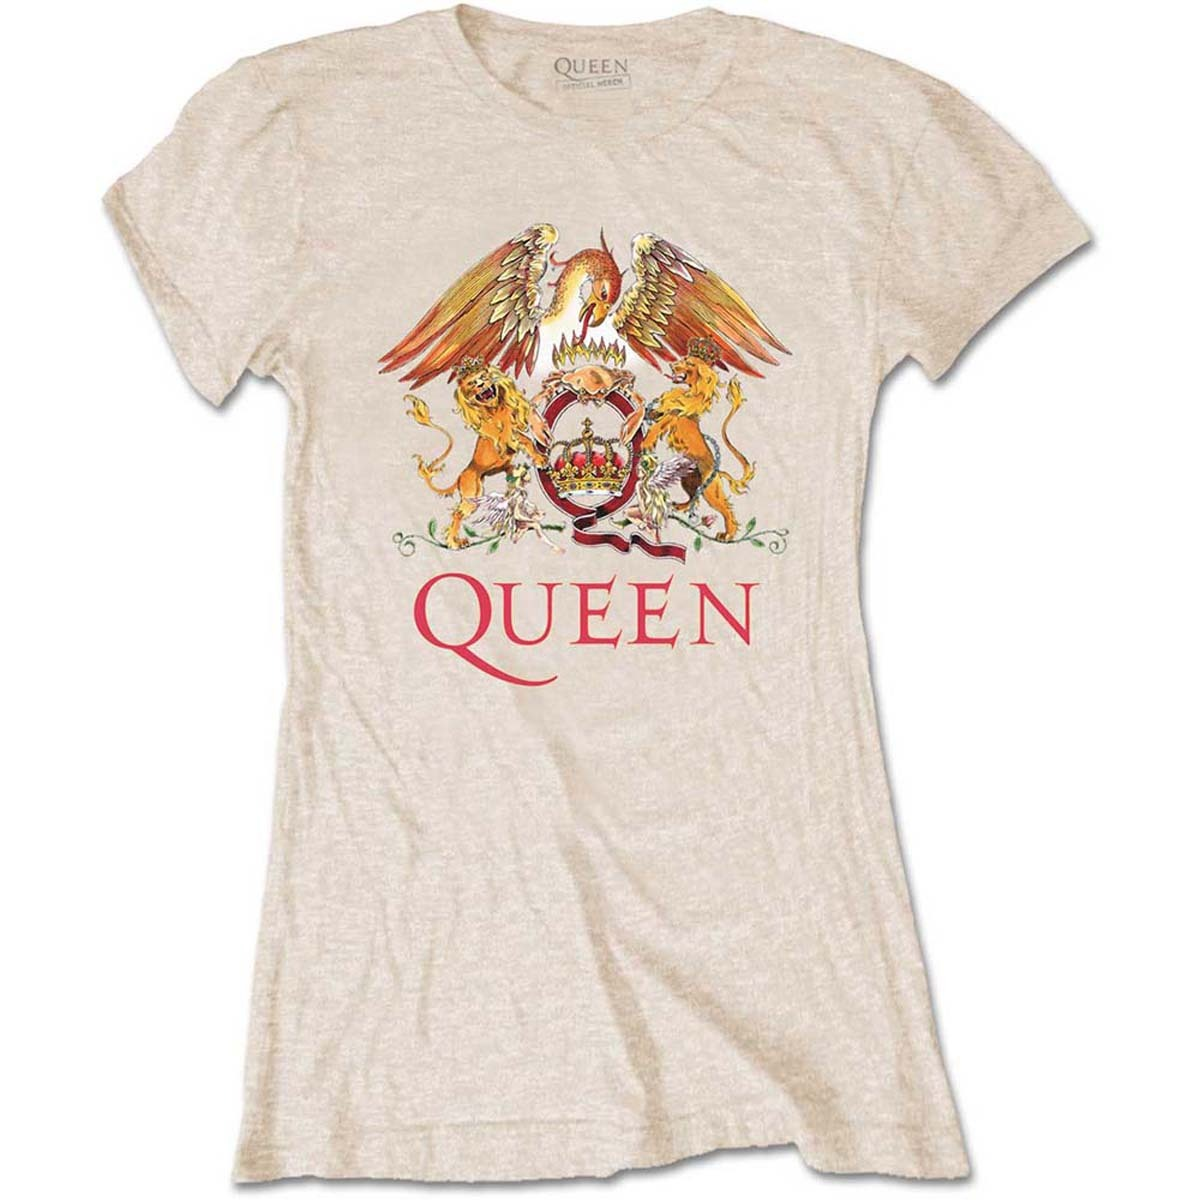 Primary image for Ladies Sand Queen Crest Freddie Mercury Official Tee T-Shirt Womens Girls